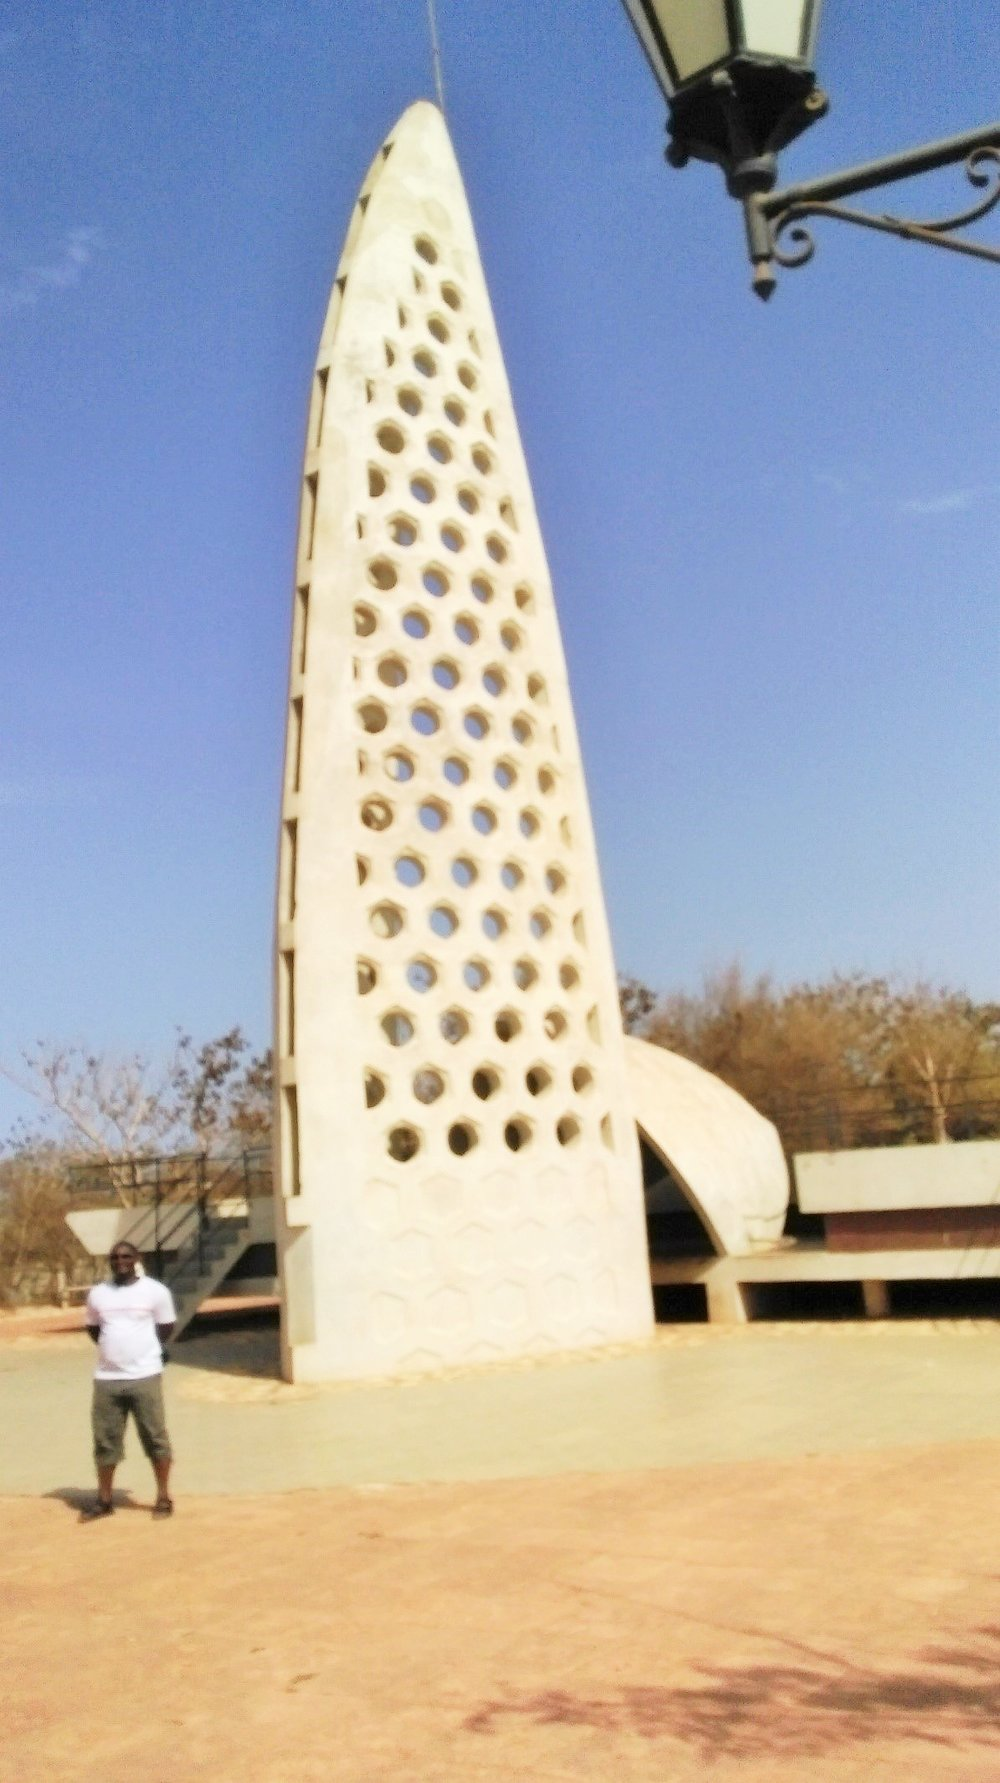 Slavery monument at Goree Island, Île de Gorée